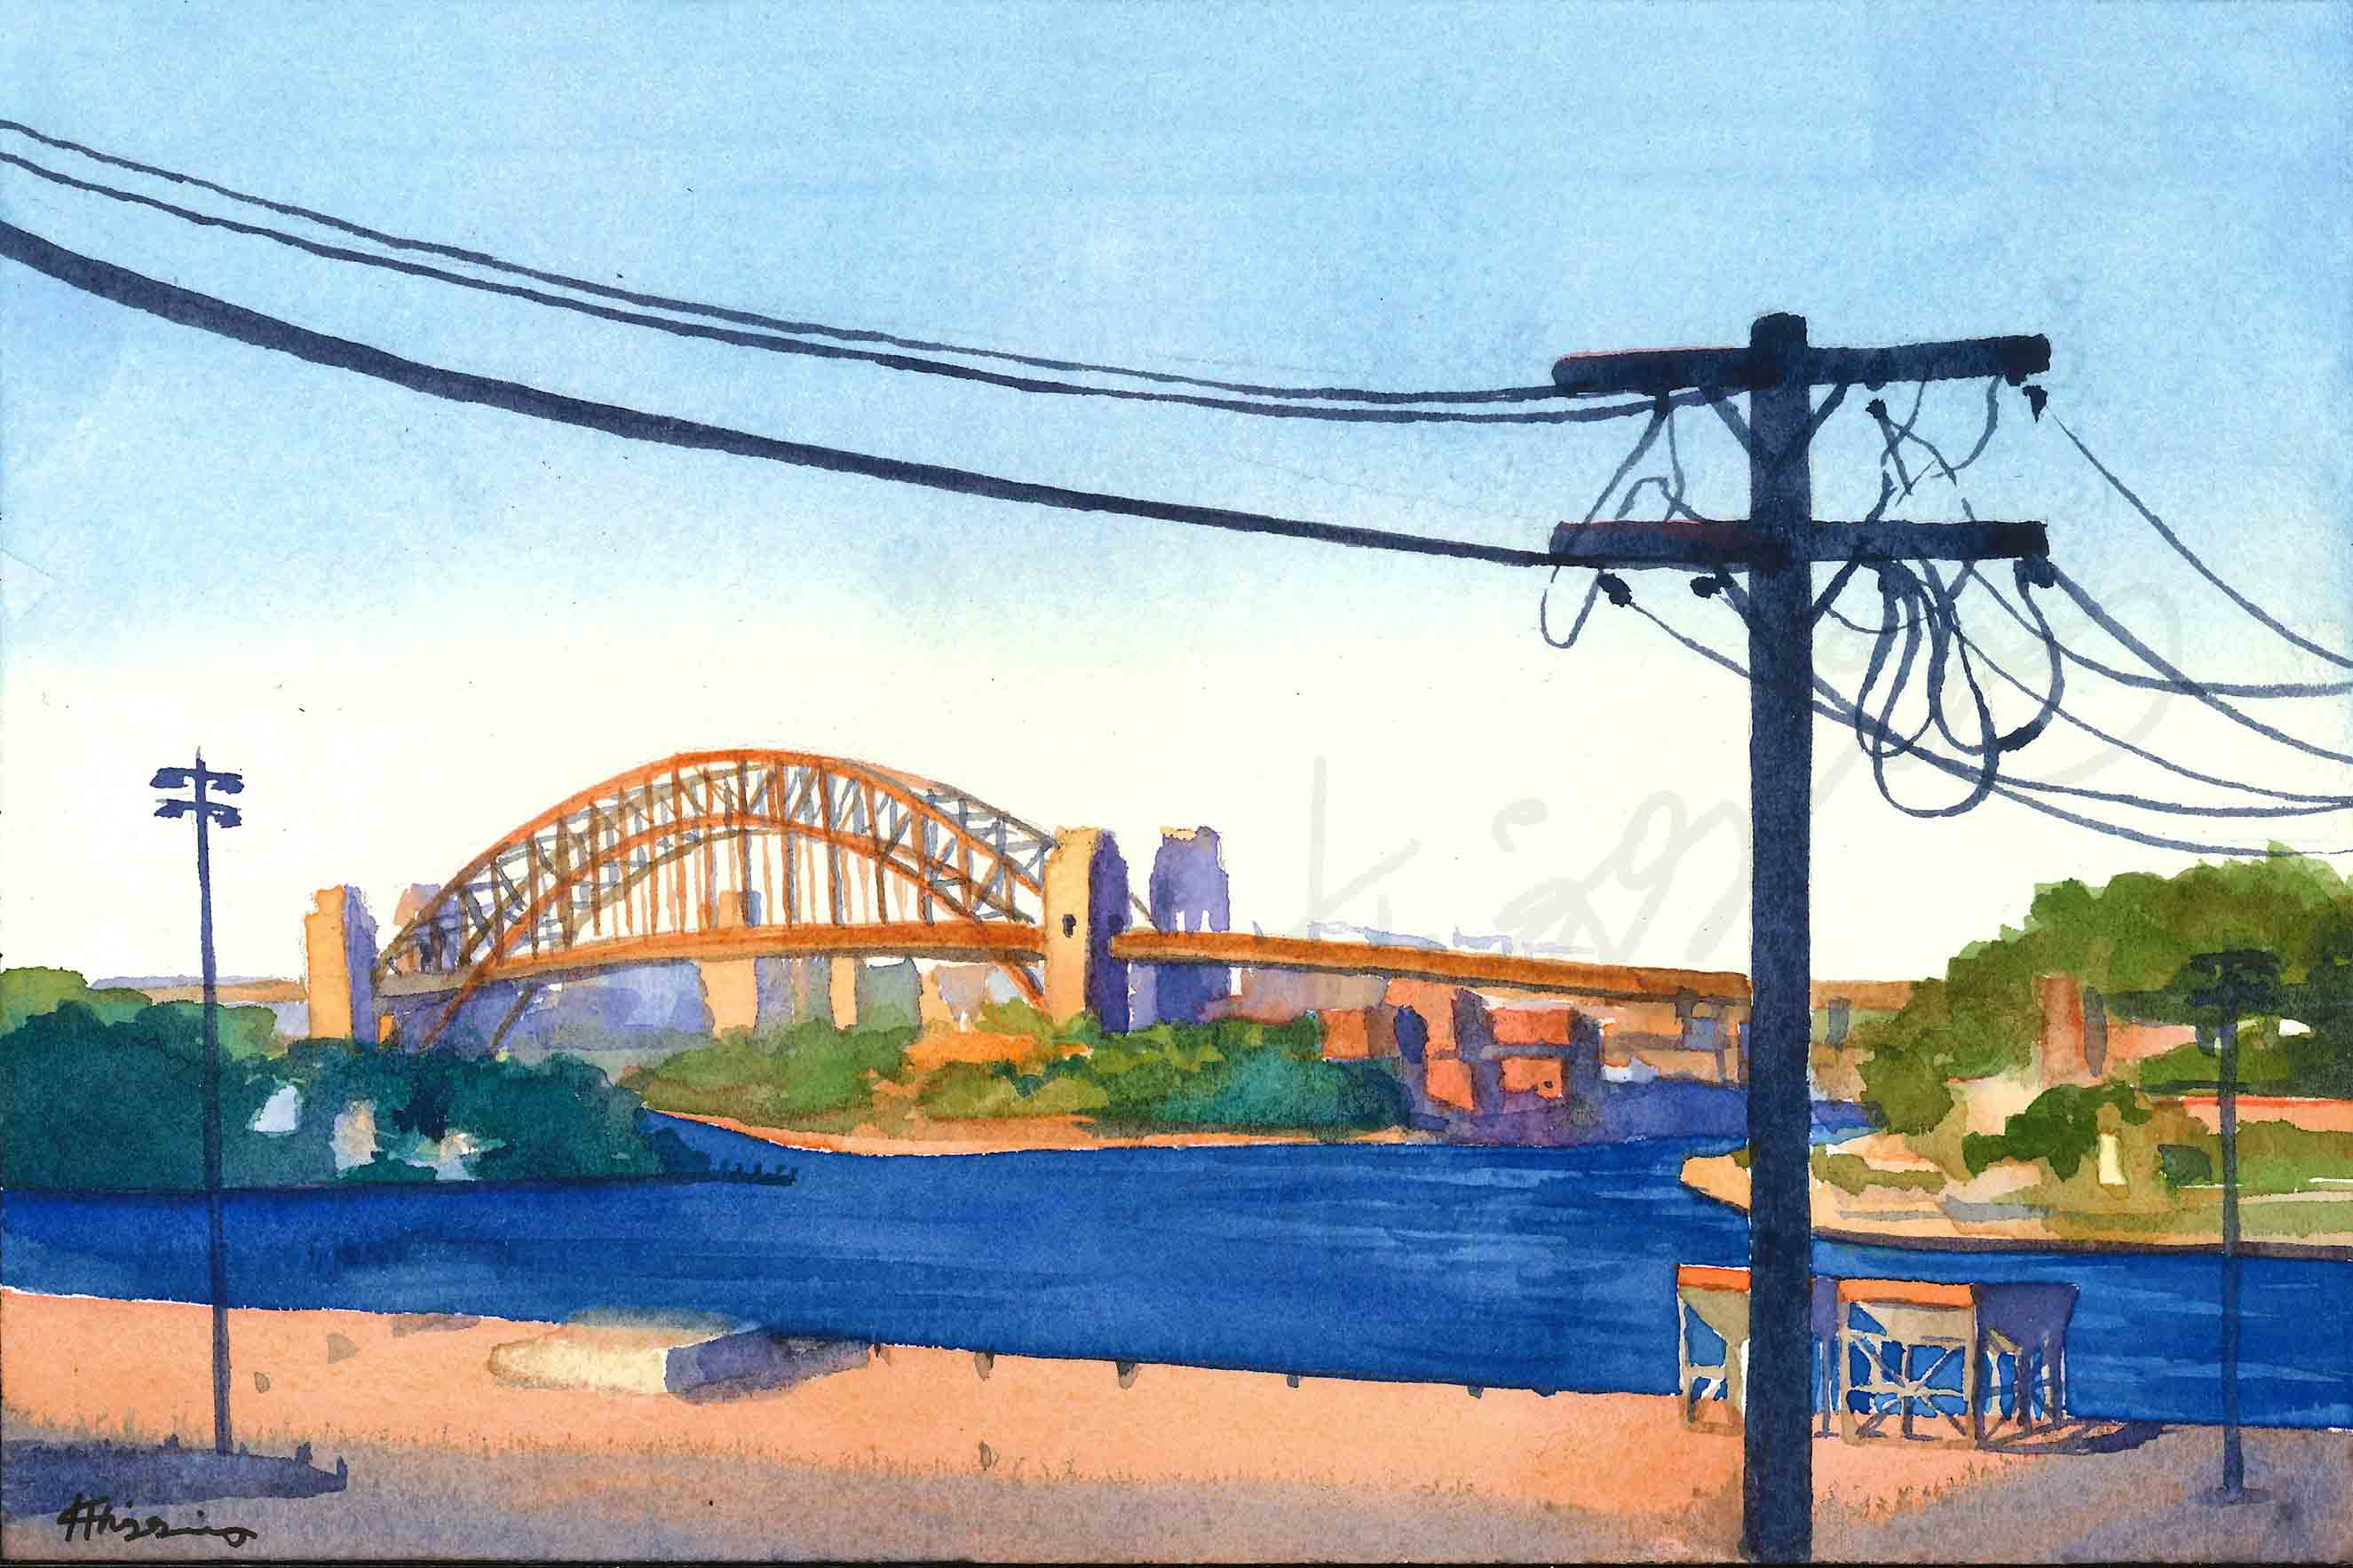 Watercolour painting of Sydney's Harbour bridge at sunset, with silhouettes of telephone poles in the foreground